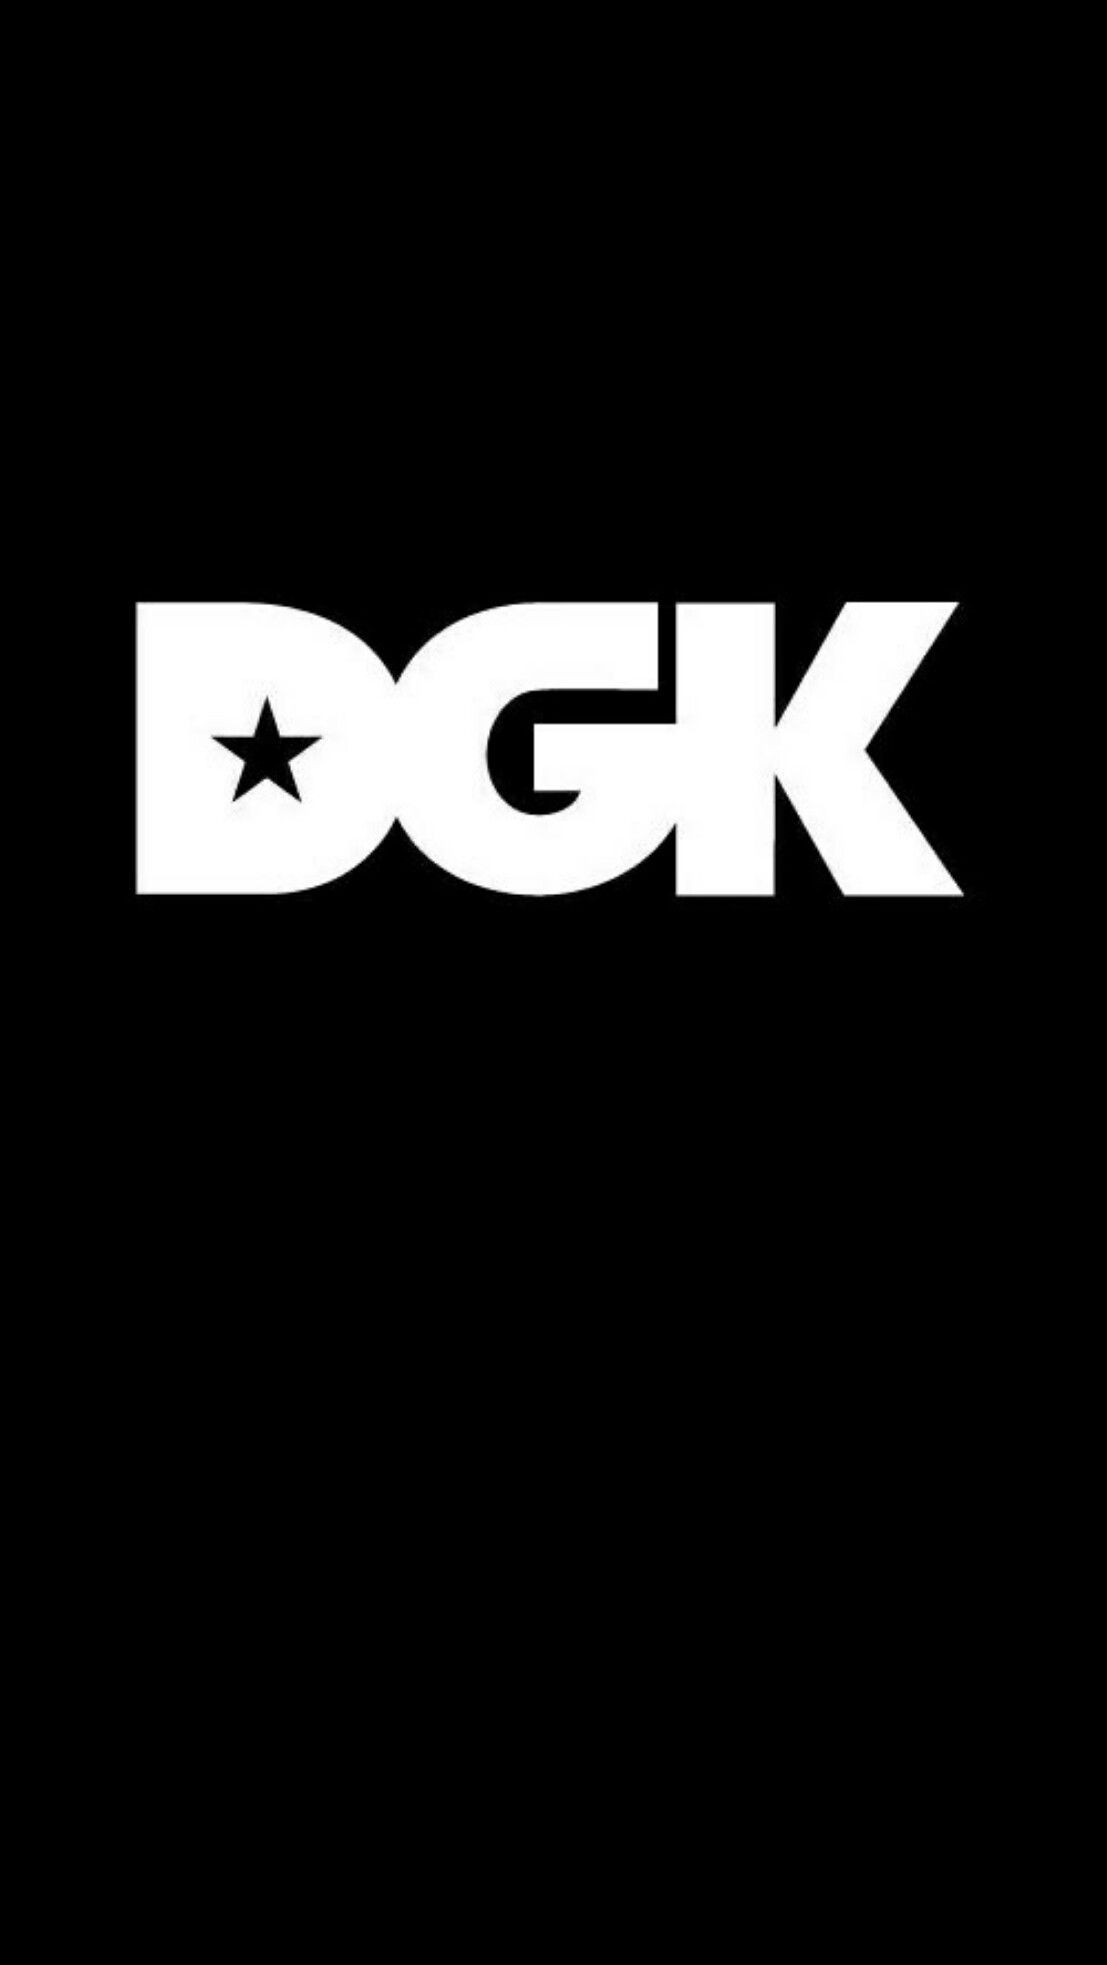 Dgk Black Wallpaper IPhone Android